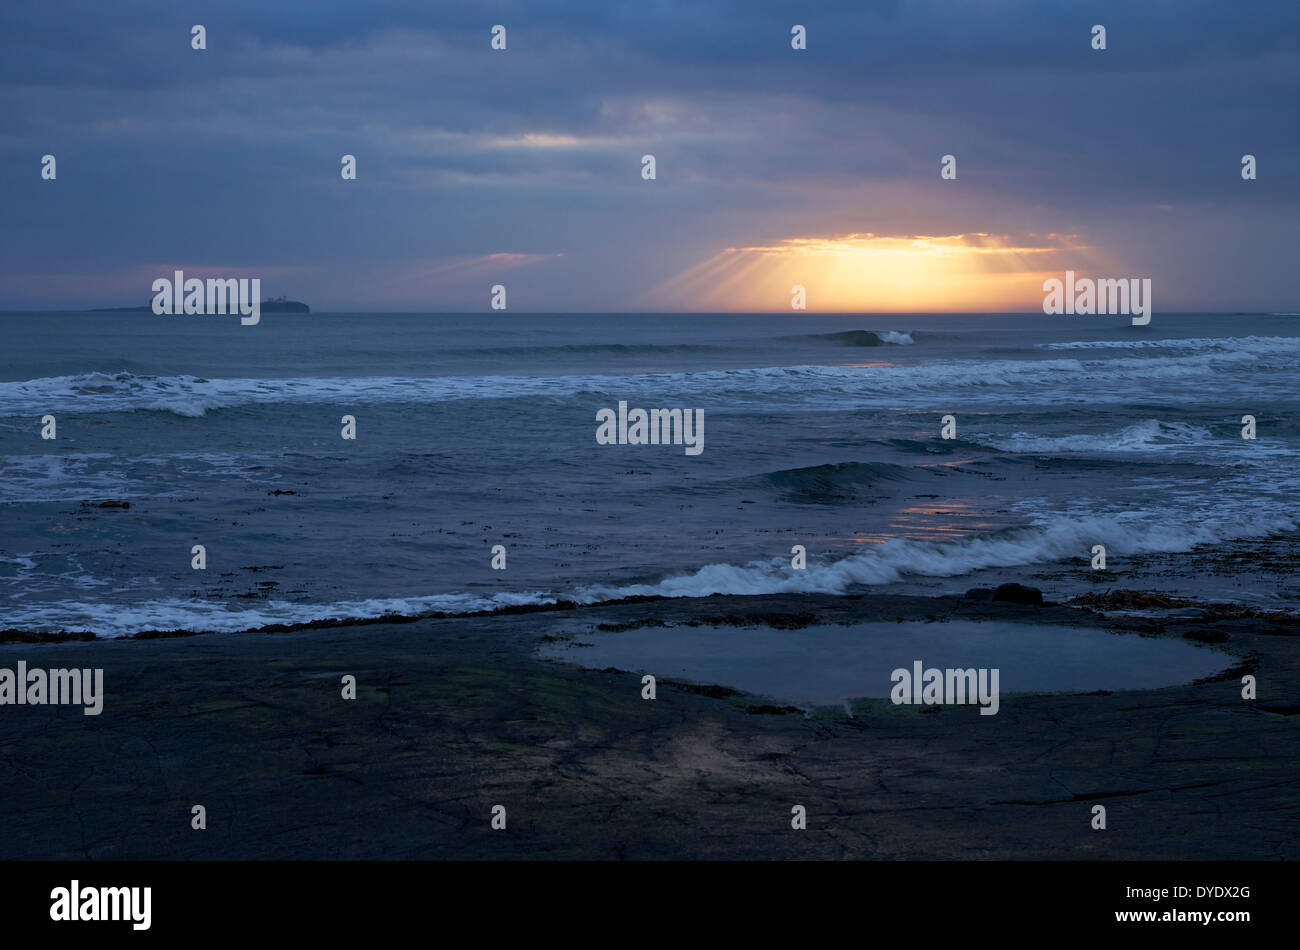 Sunrise and Farne Islands. The shape of the early sun's rays are very suggestive of godly presence. Stock Photo